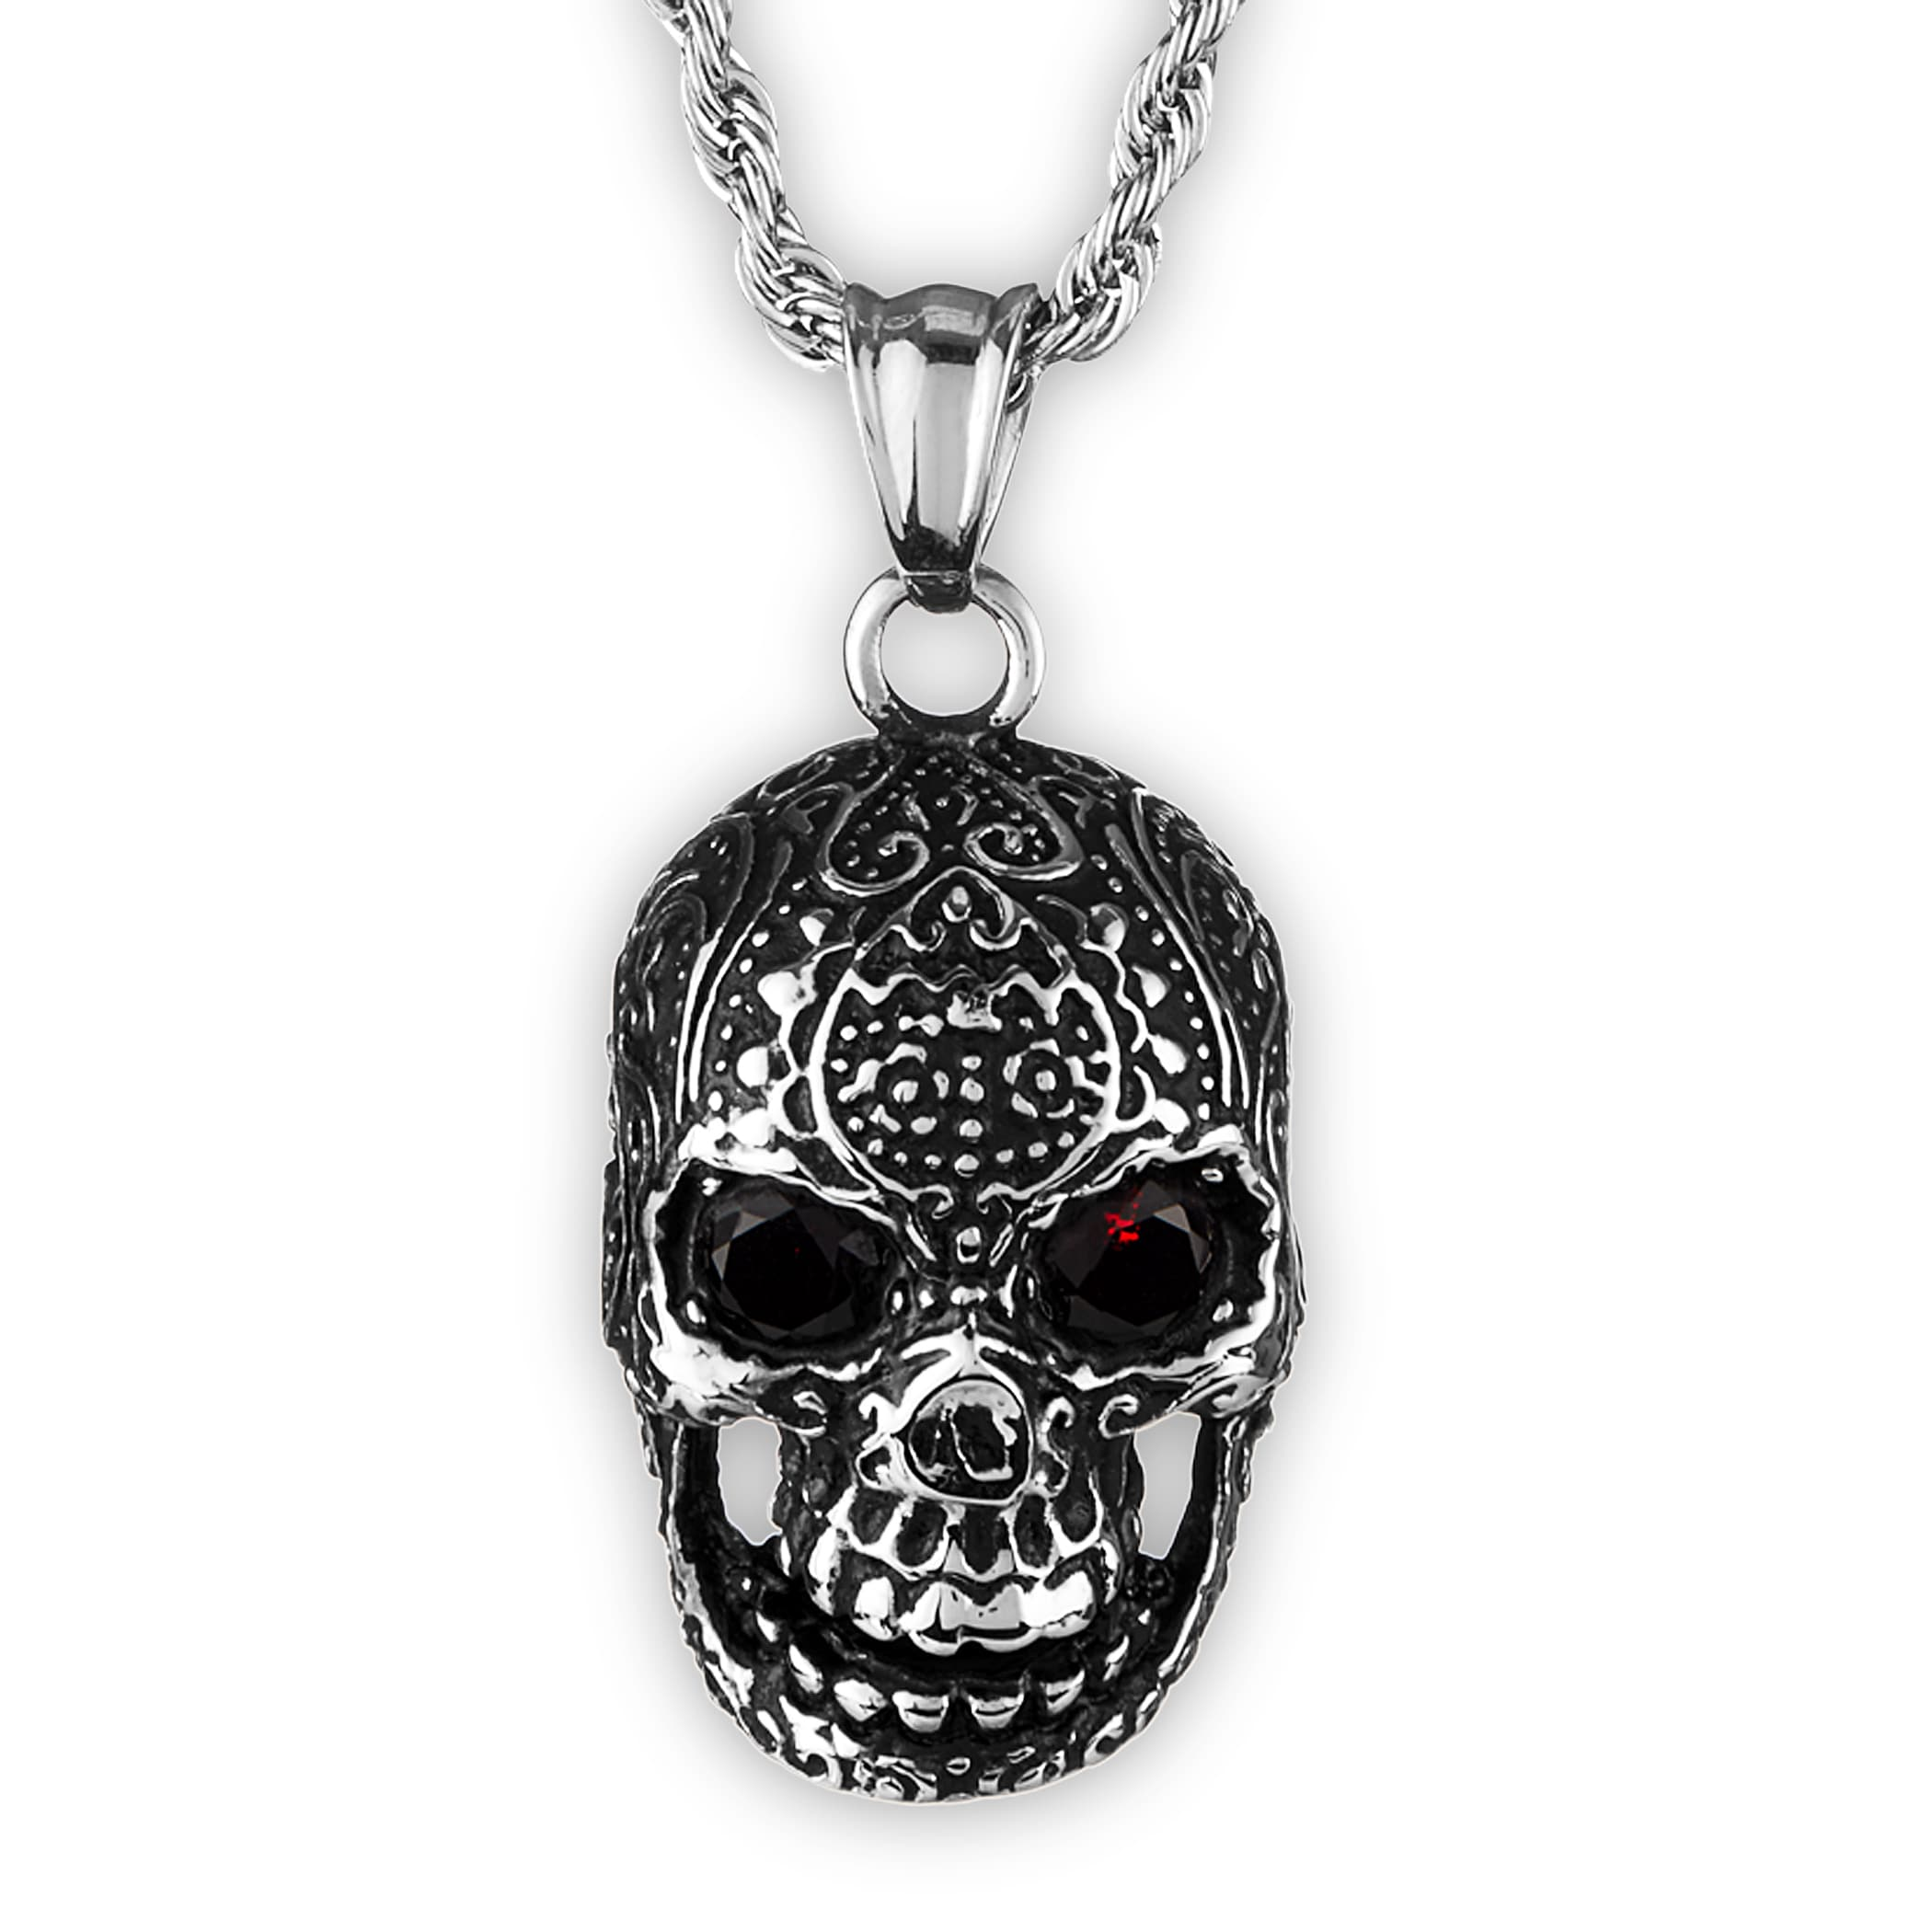 Crucible mens stainless steel red crystal eyes skull pendant on 24 crucible mens stainless steel red crystal eyes skull pendant on 24 inch rope chain necklace free shipping on orders over 45 overstock 19005352 aloadofball Gallery